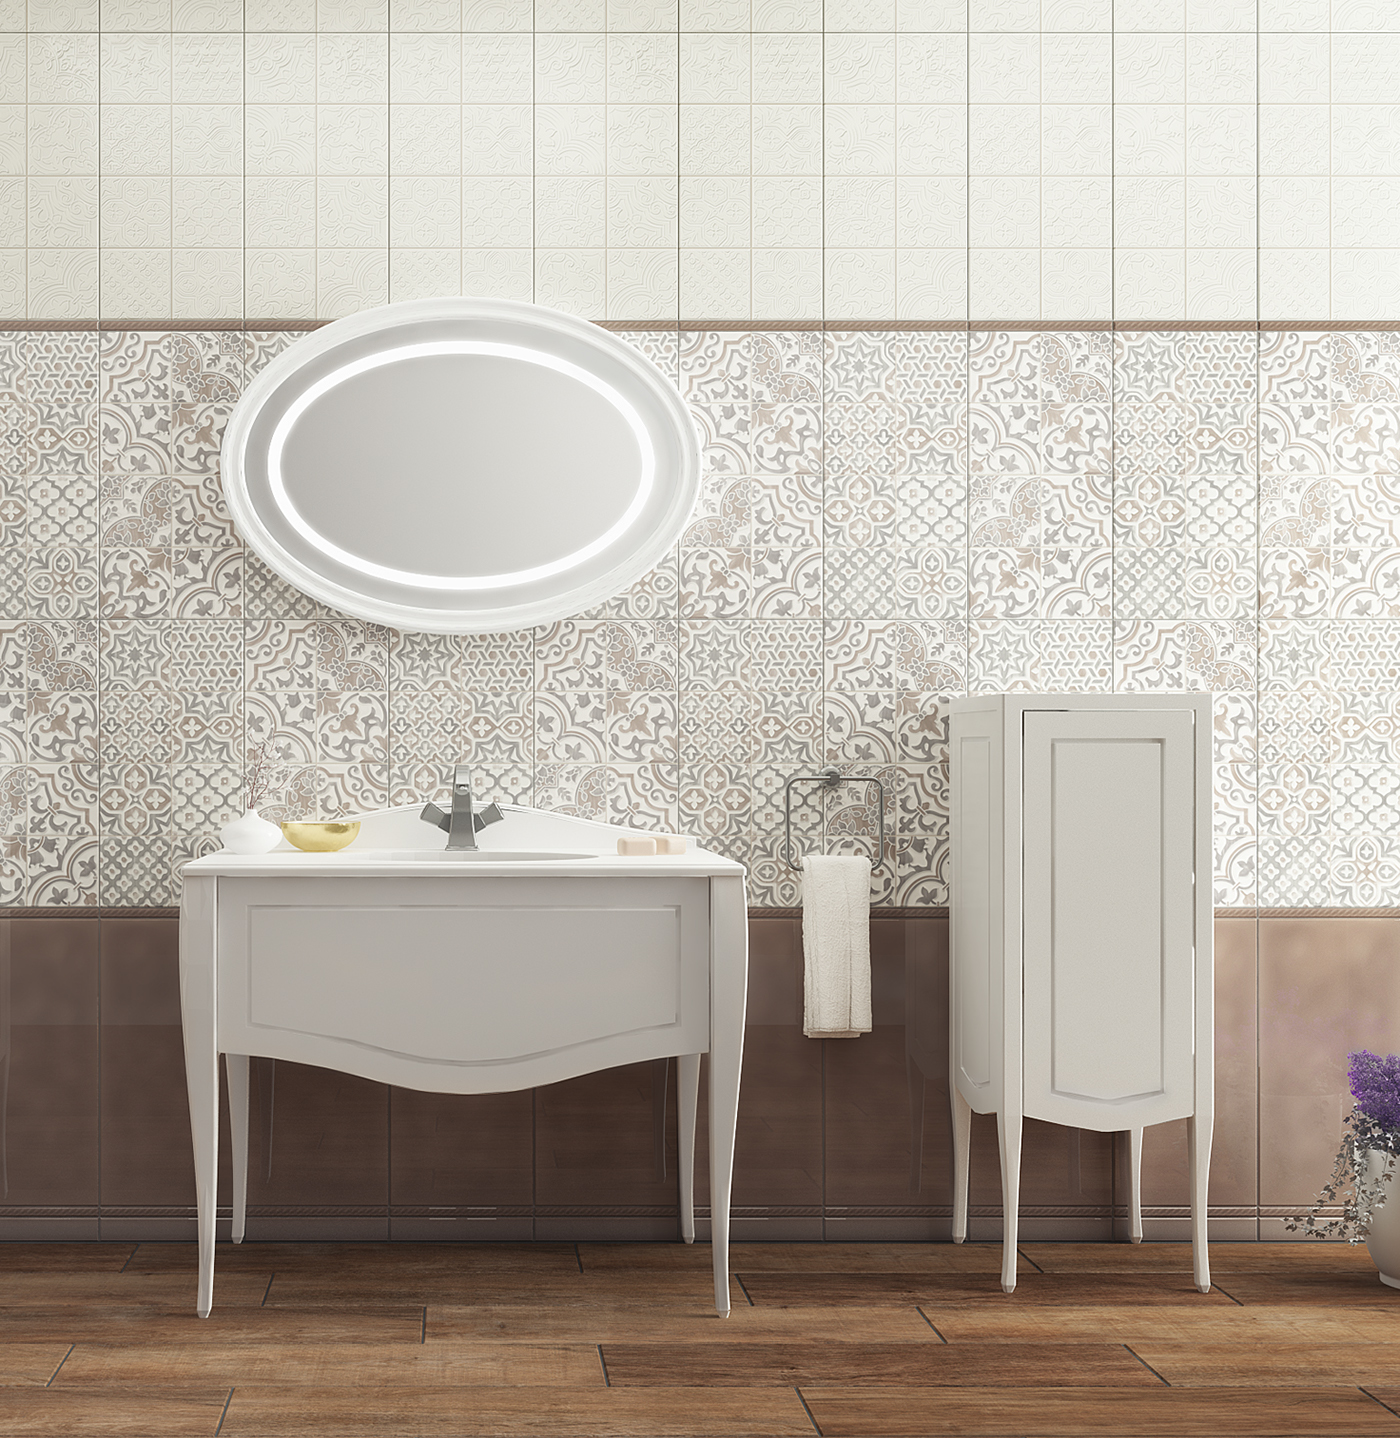 Craftmix wall tiles on behance inspired by traditional handmade ceramics classic approach and trendy colours and surfaces allowing to create cozy and yet moden interior bor both bathroom doublecrazyfo Choice Image